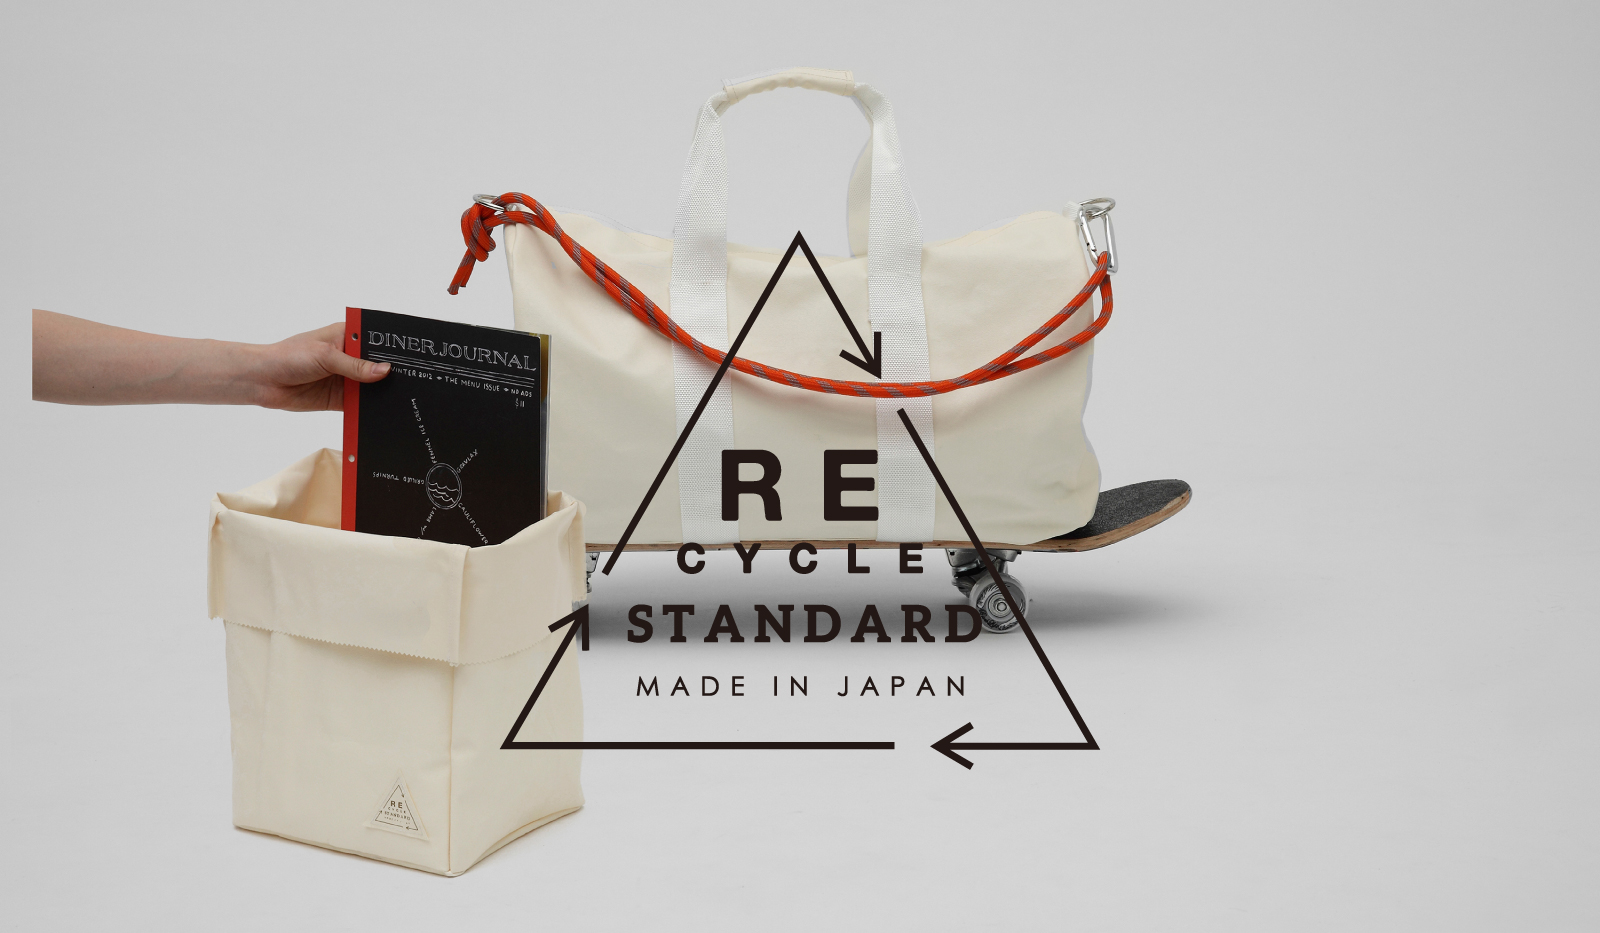 RECYCLE STANDARD MADE IN JAPAN